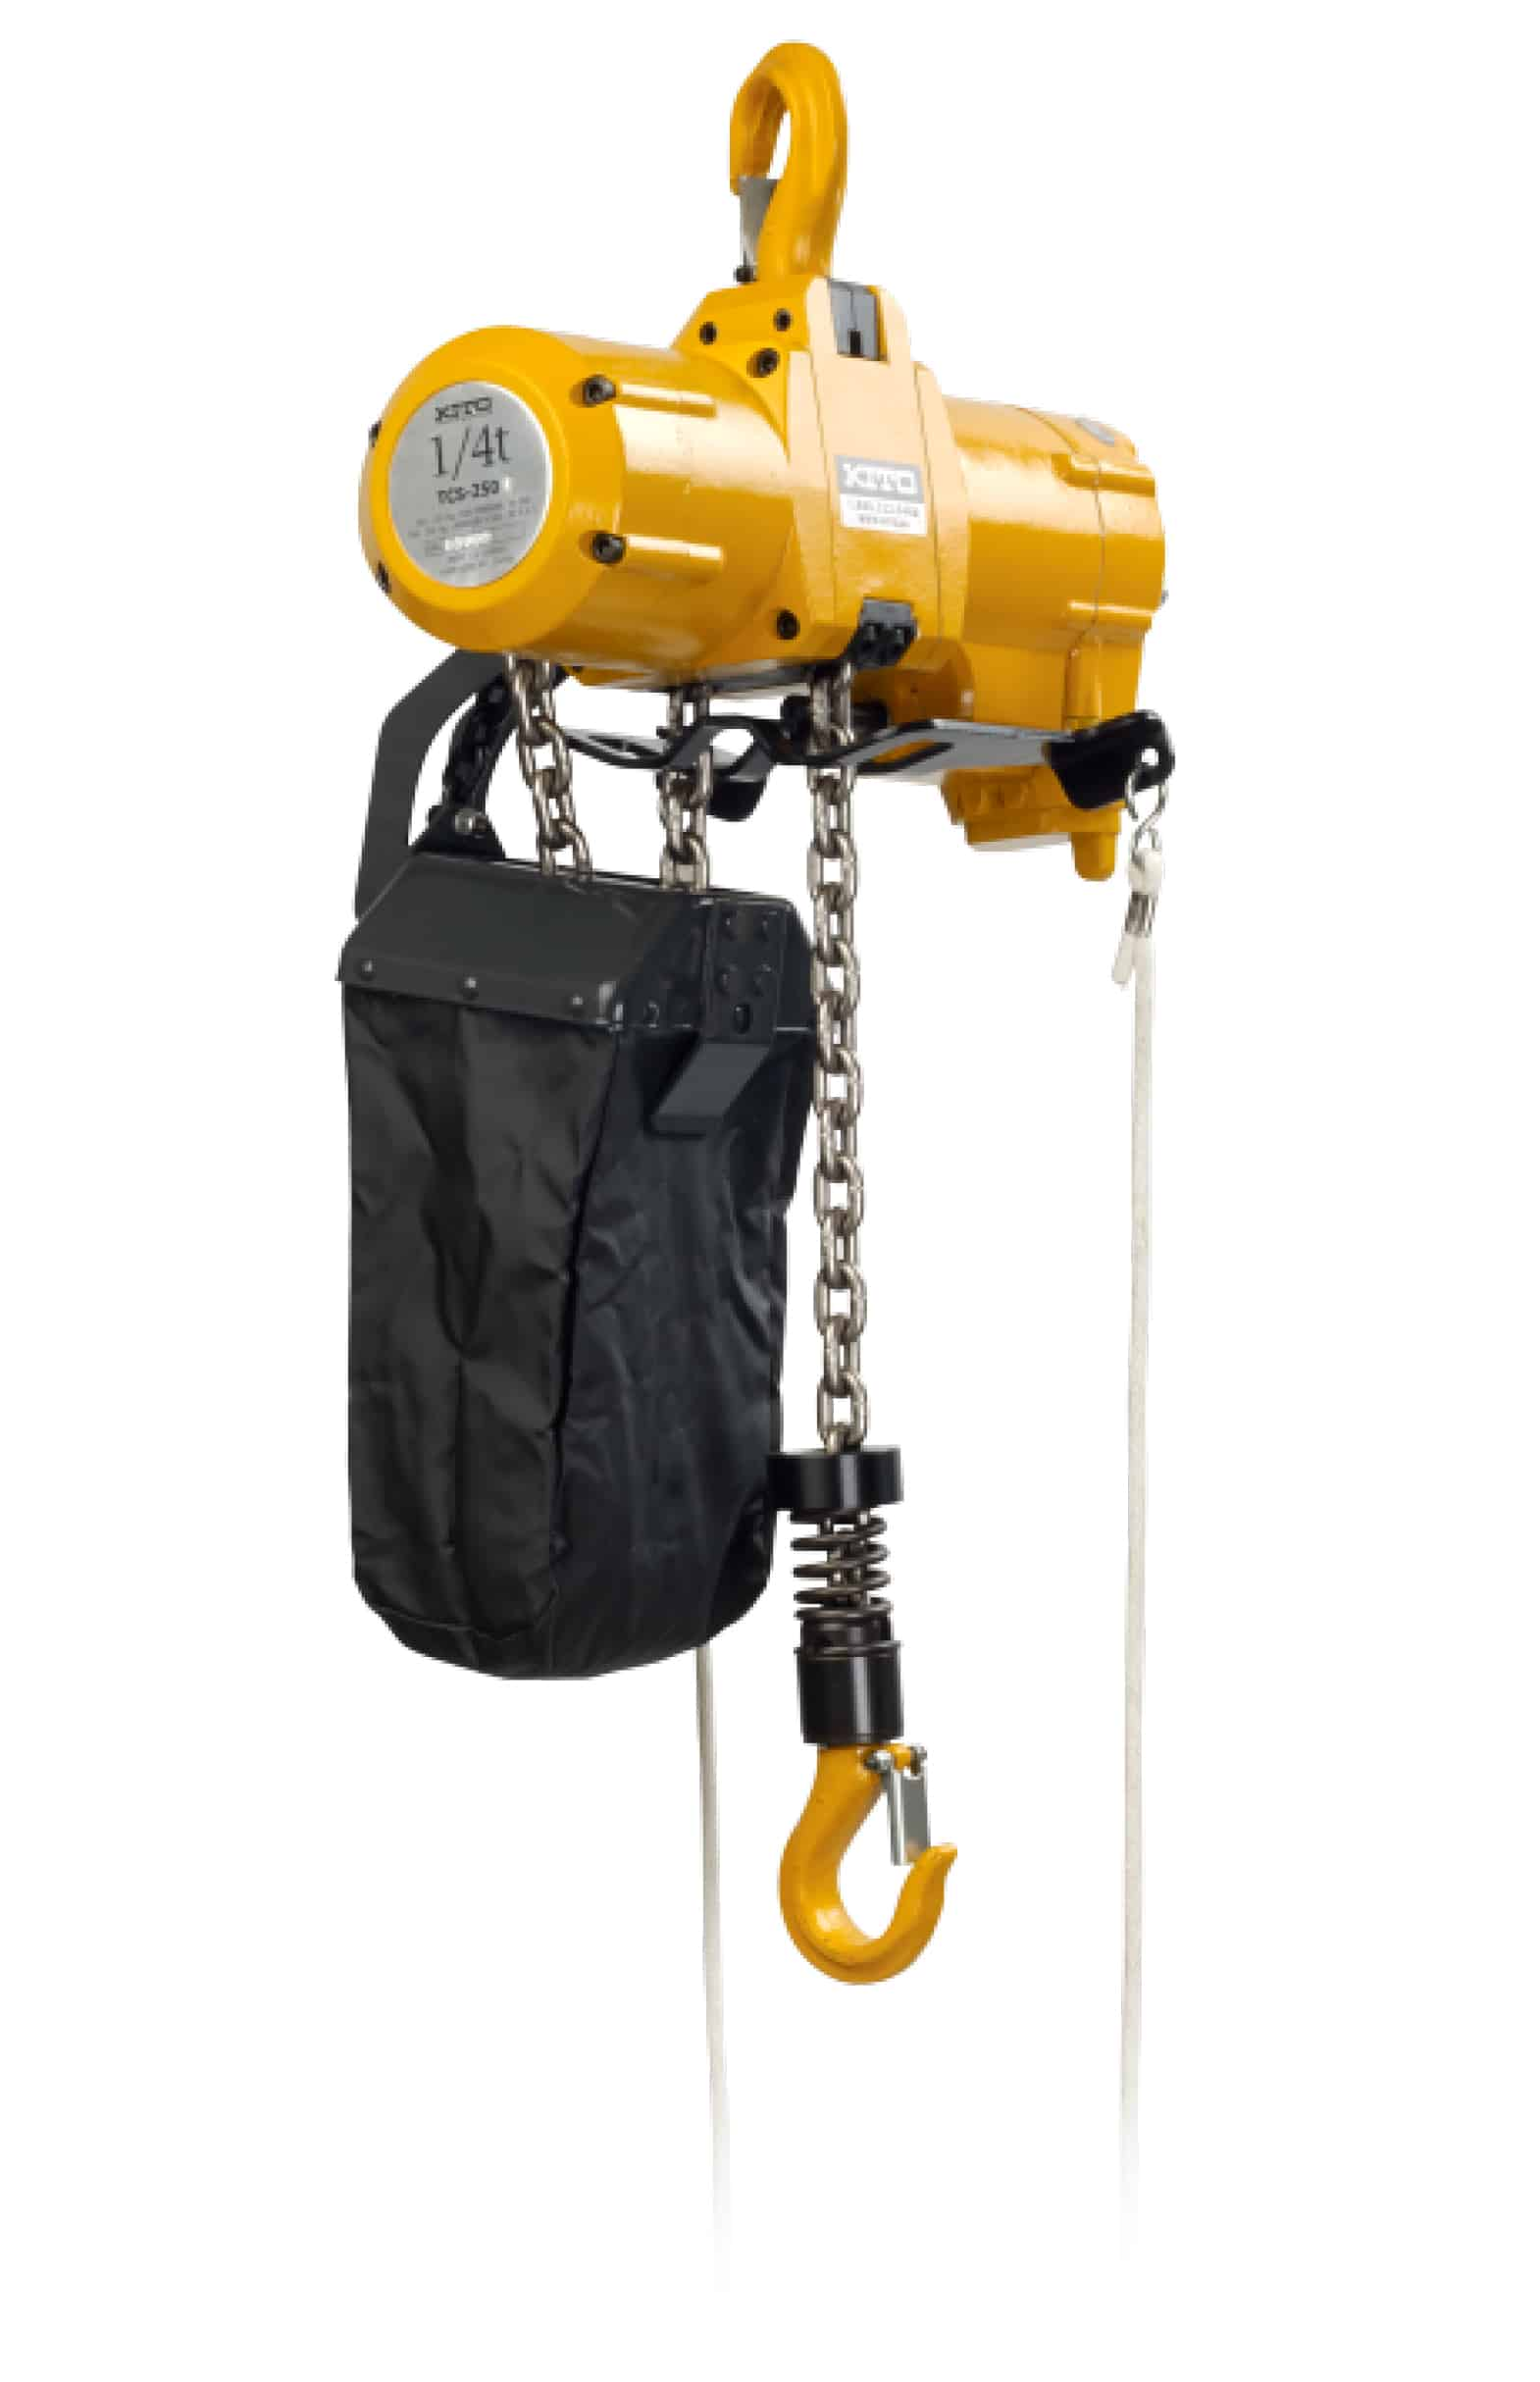 Kito TCR Powered Air Hoist